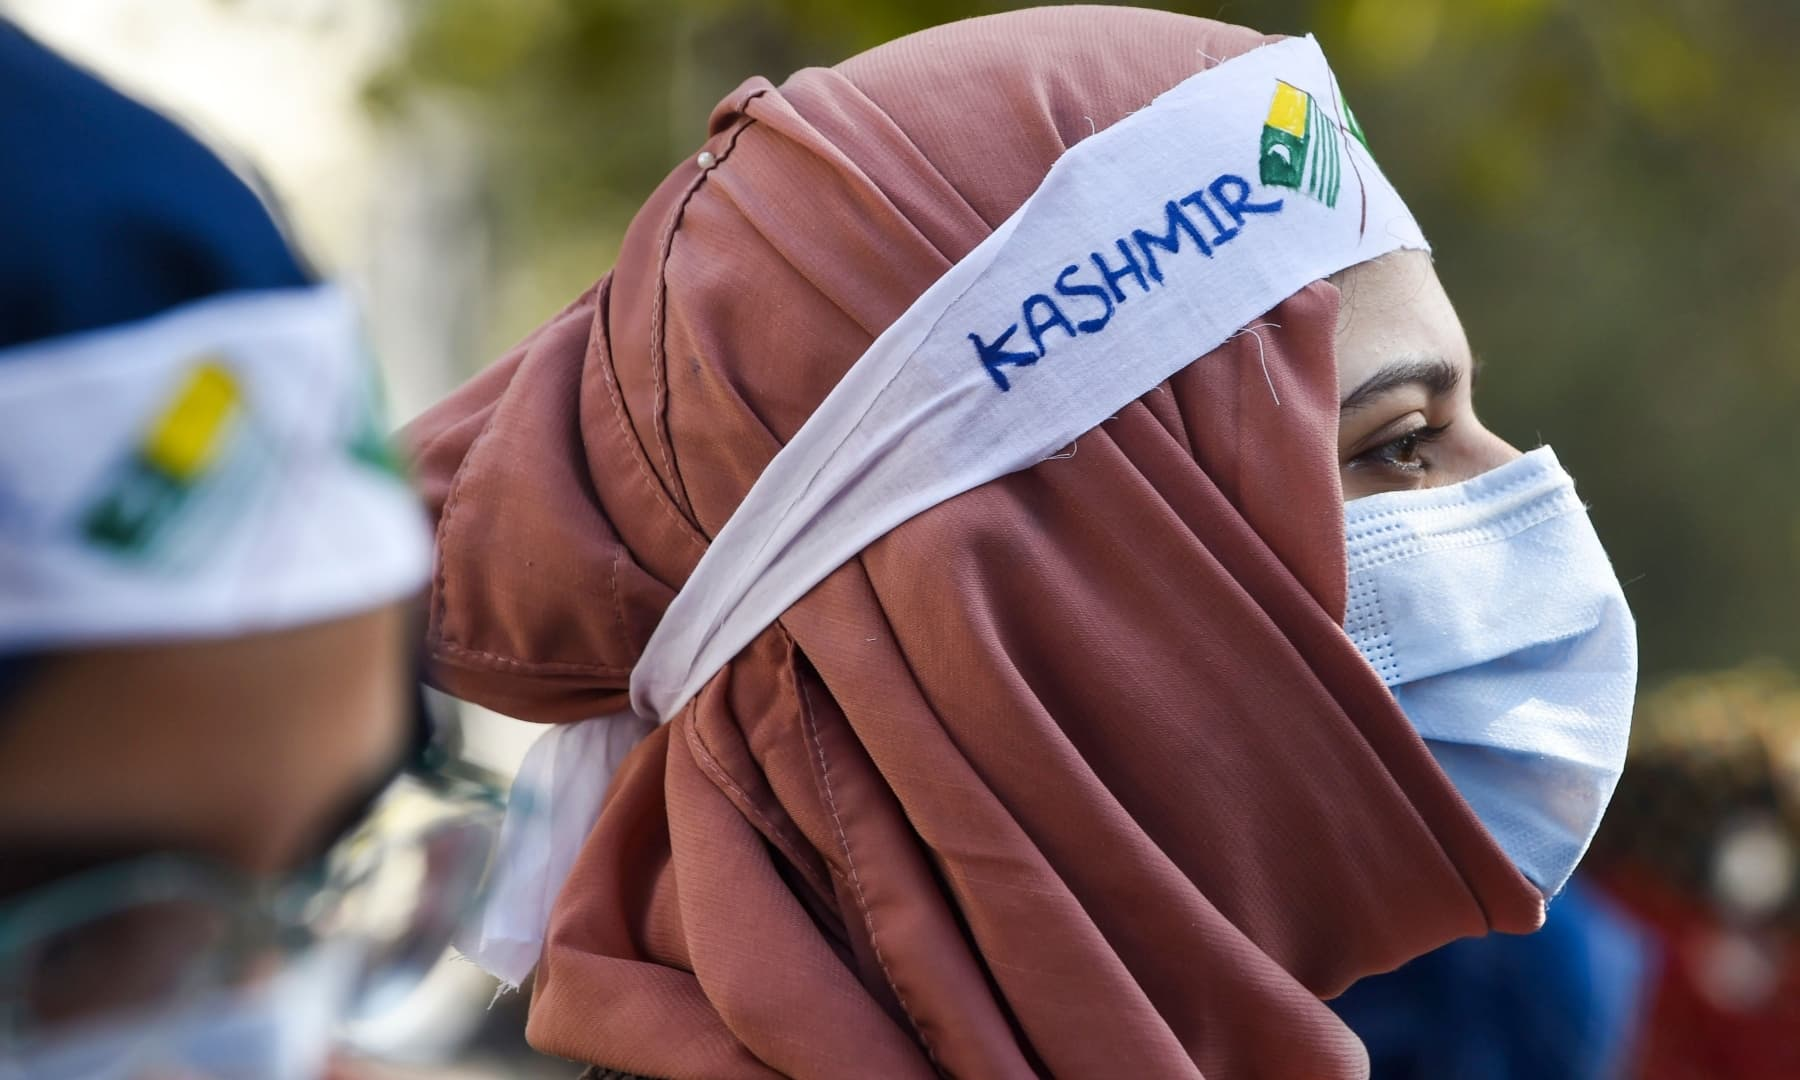 Jamaat-i-Islami (JI) activists and supporters take part in an anti-India demonstration to mark Kashmir Solidarity Day in Lahore on February 5. — AFP